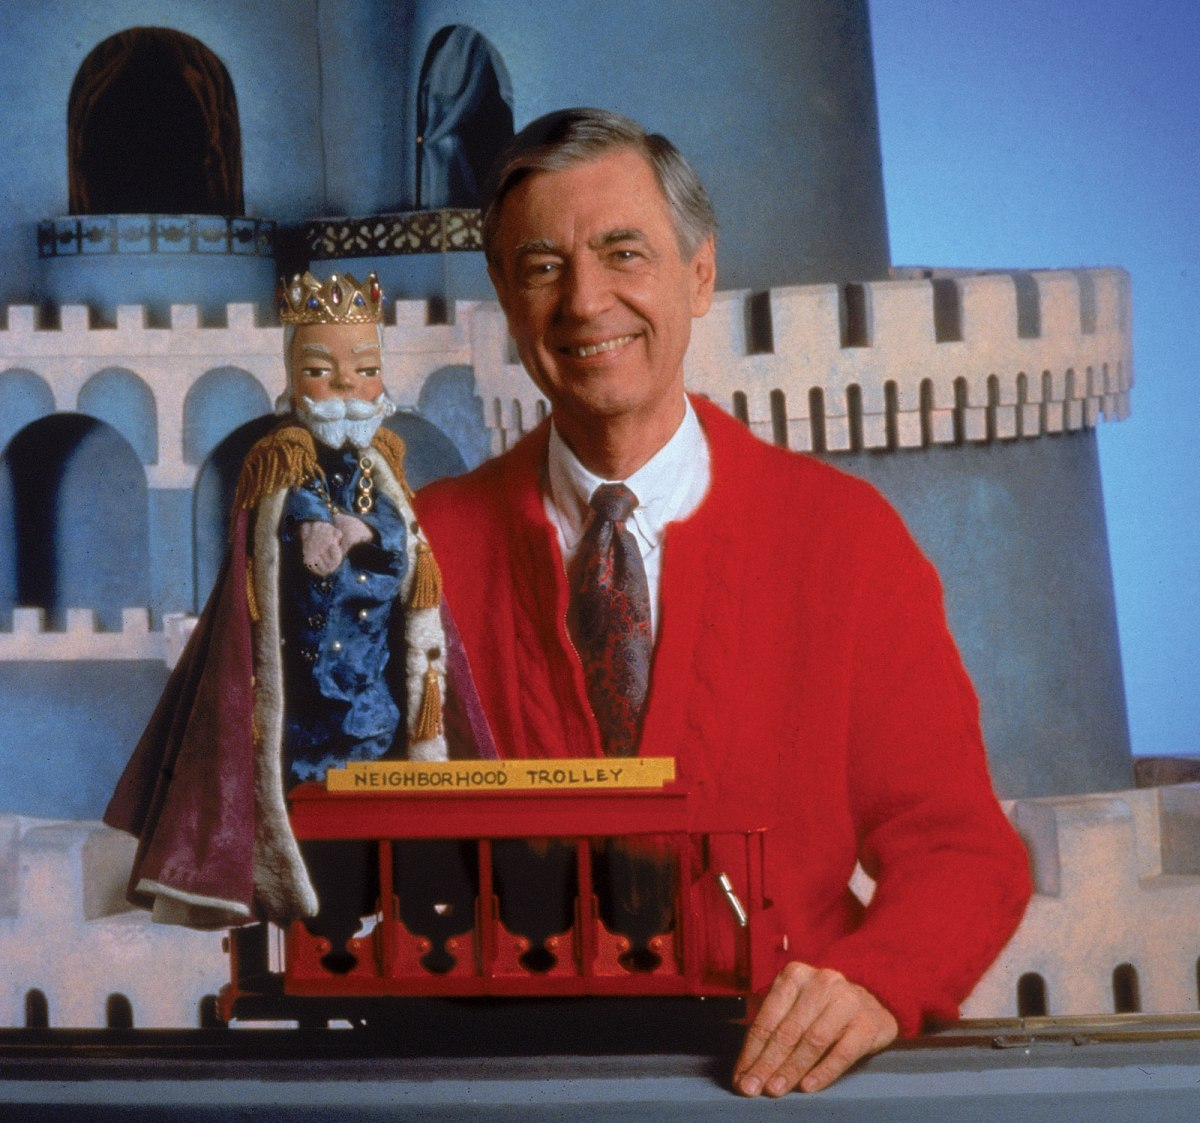 Fred Rogers and King Friday in the Neighborhood of Make-Believe.